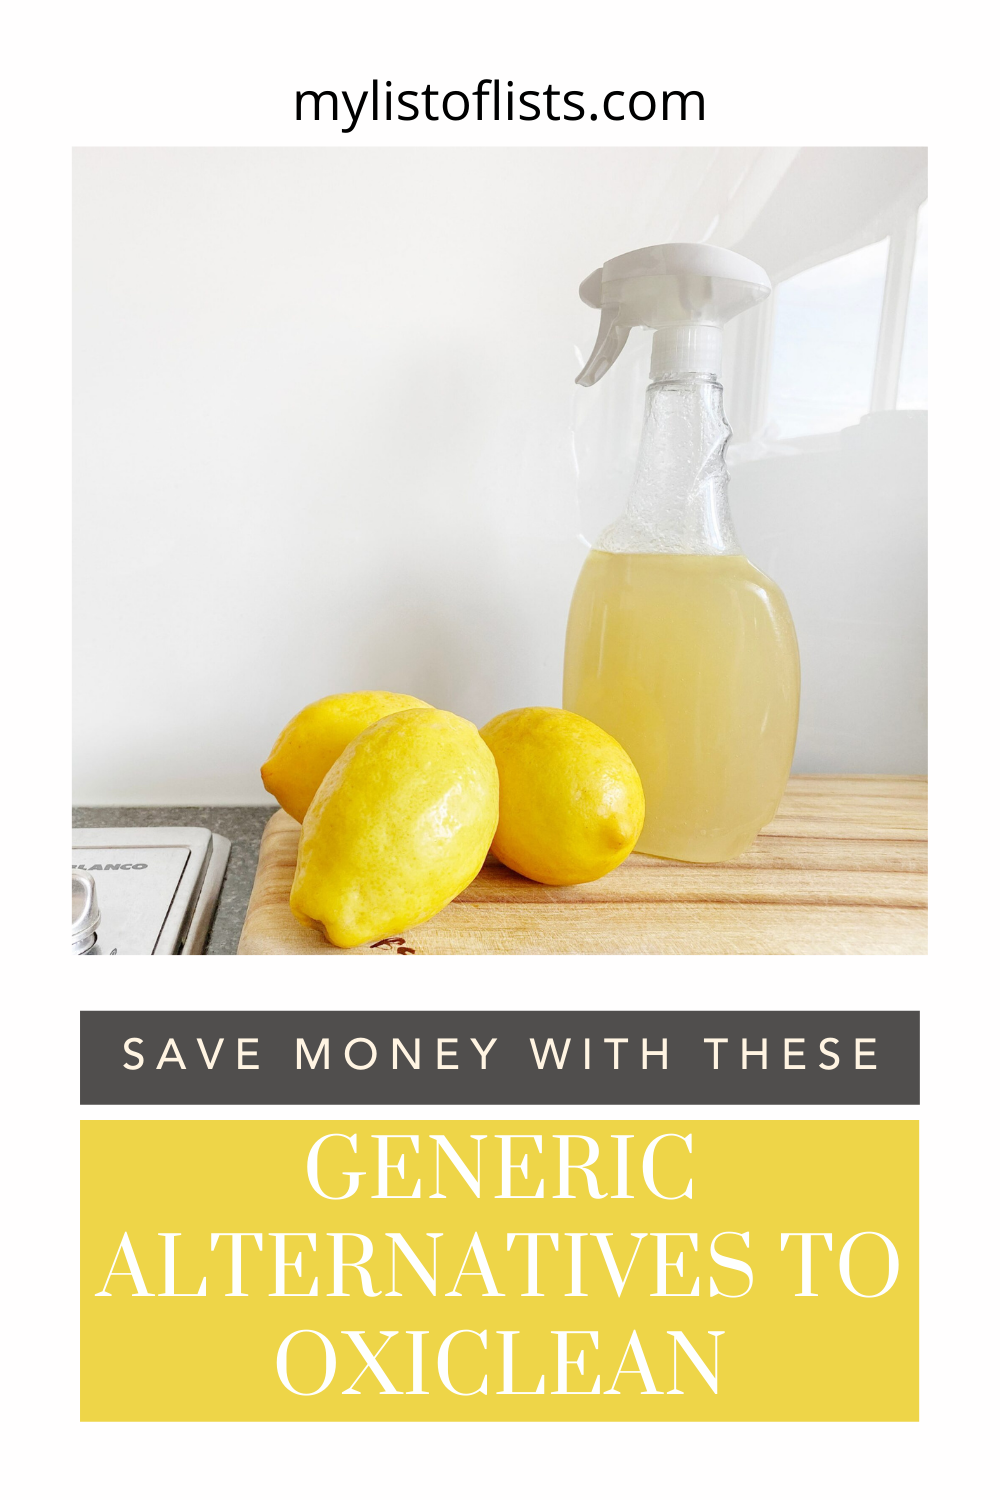 Mylistoflists.com has a little bit of everything. Find loads of ways you can make your life a little bit easier. Learn how you can save money on household cleaners with these generic alternatives to Oxiclean!